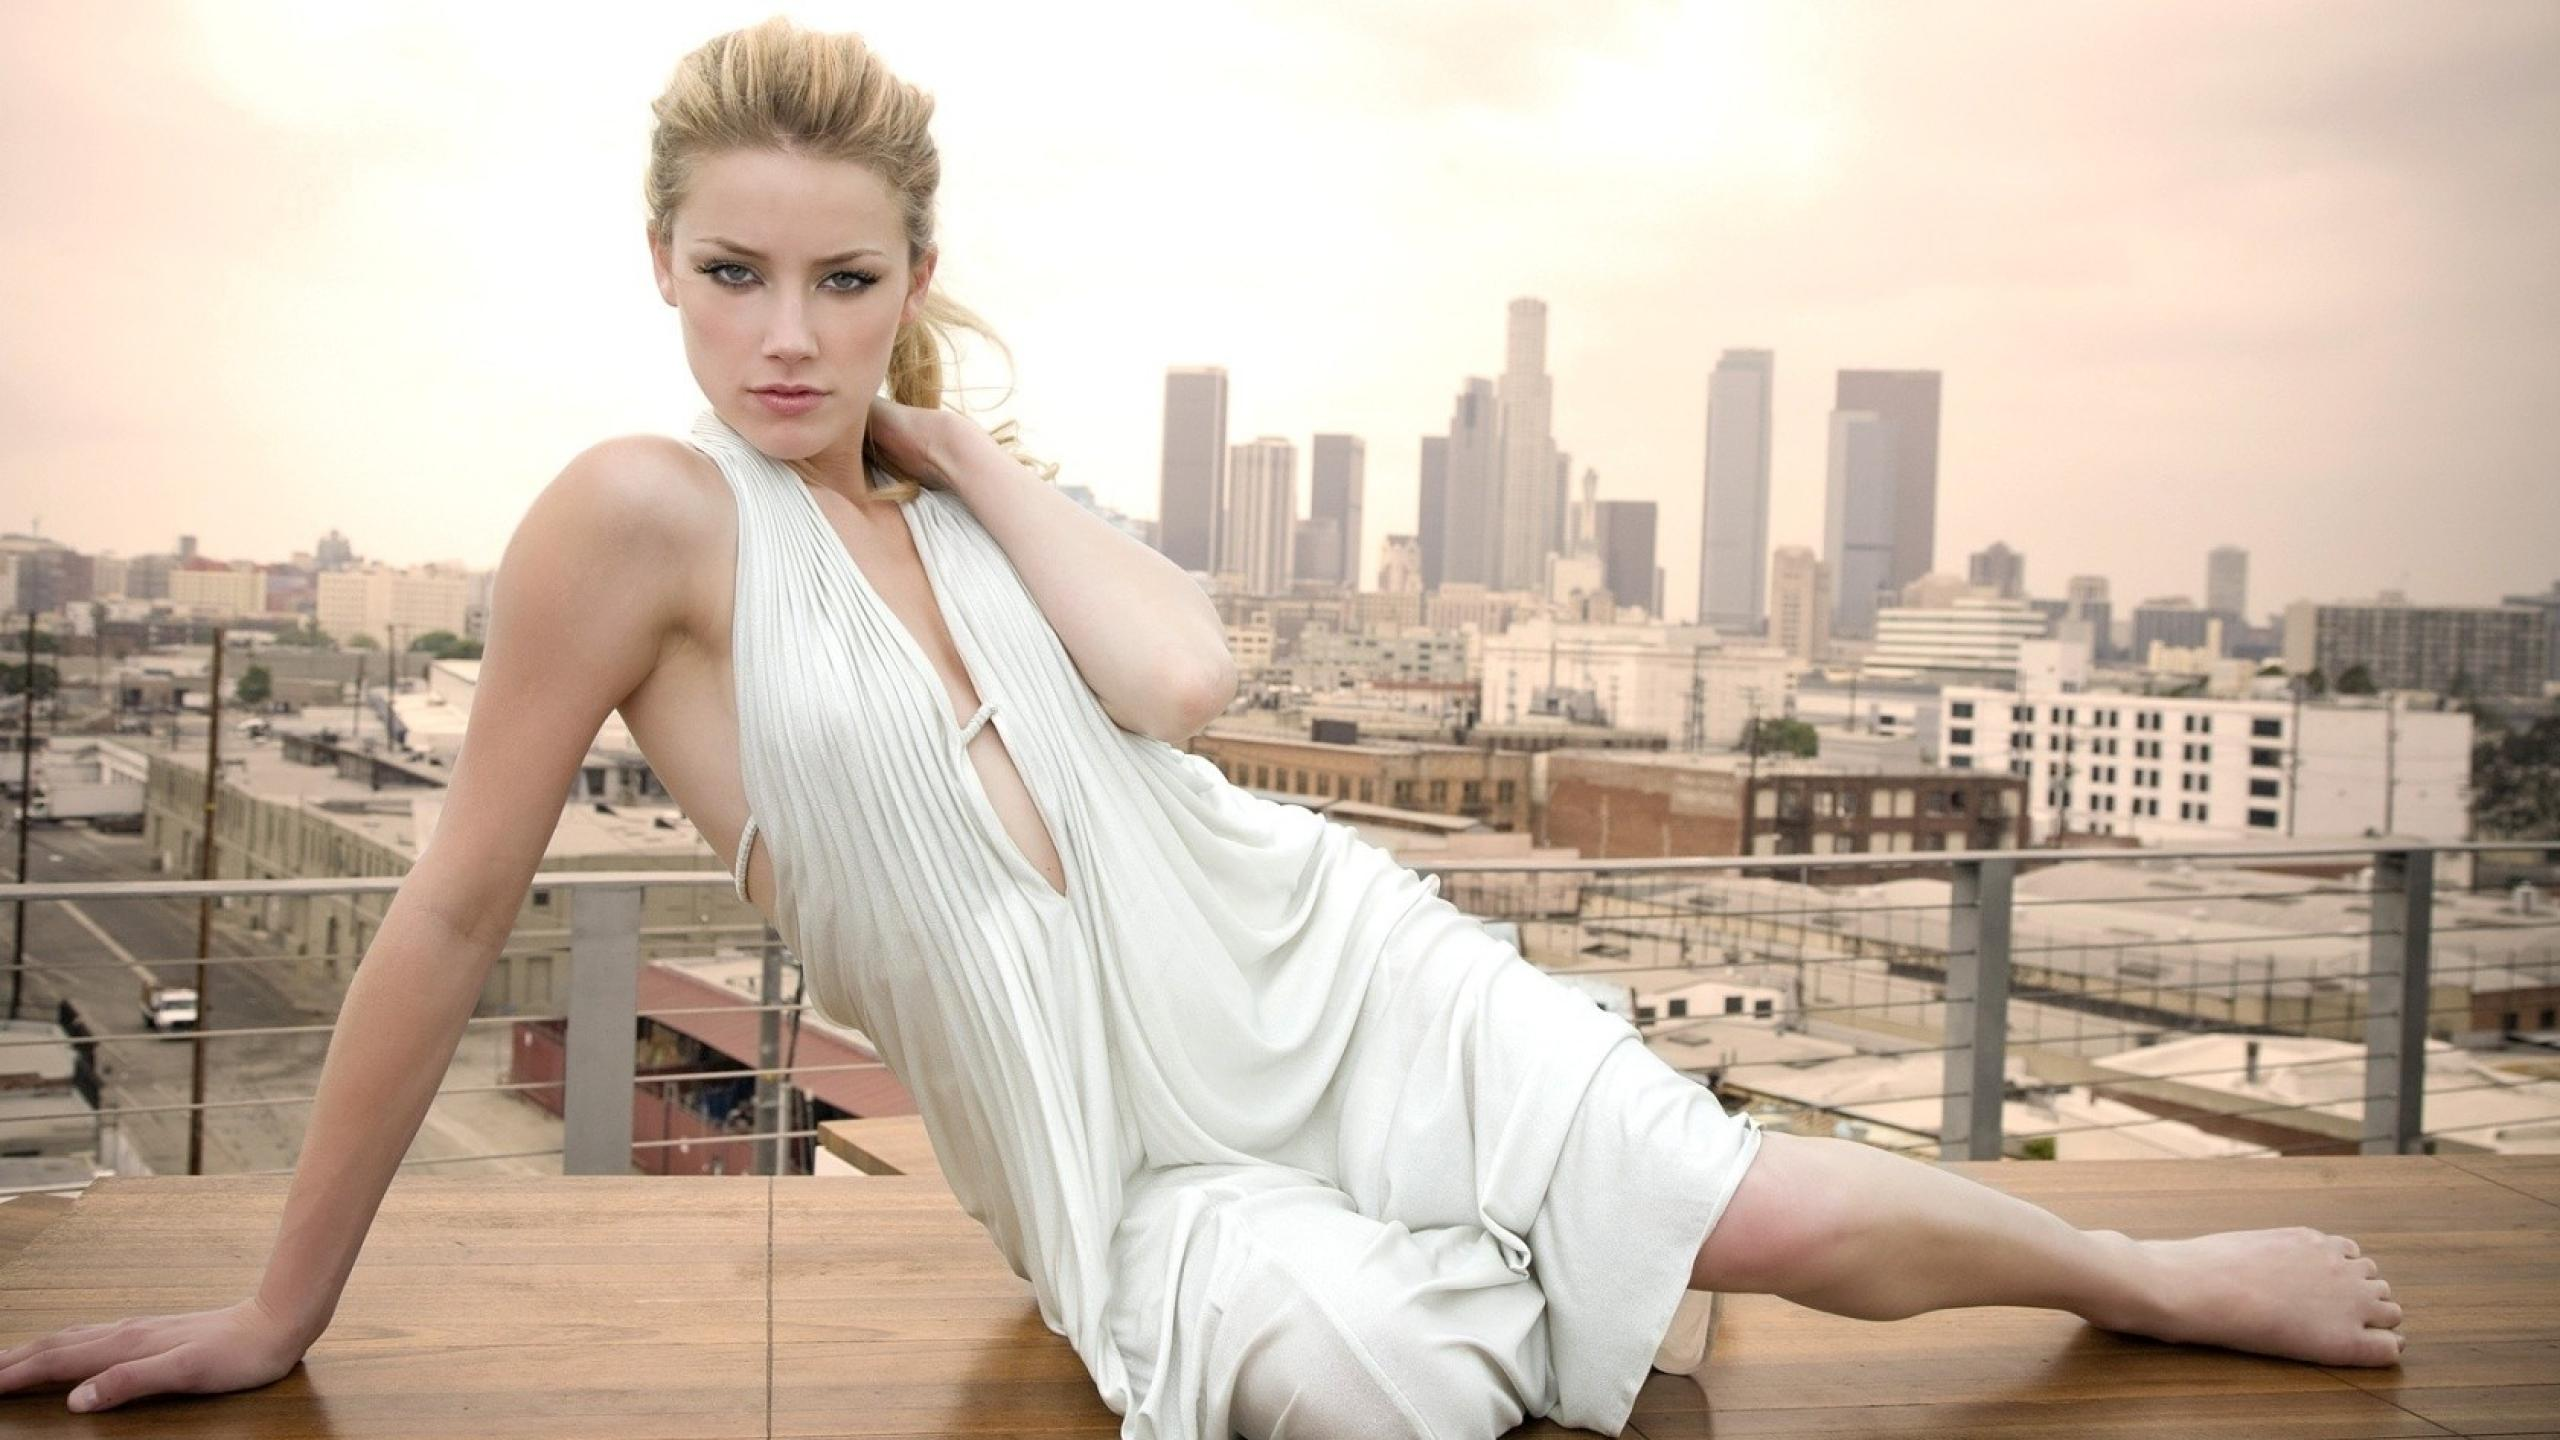 woman_fashion_outdoors_amber_heard_city_2560x1440_hd-wallpaper-1116383